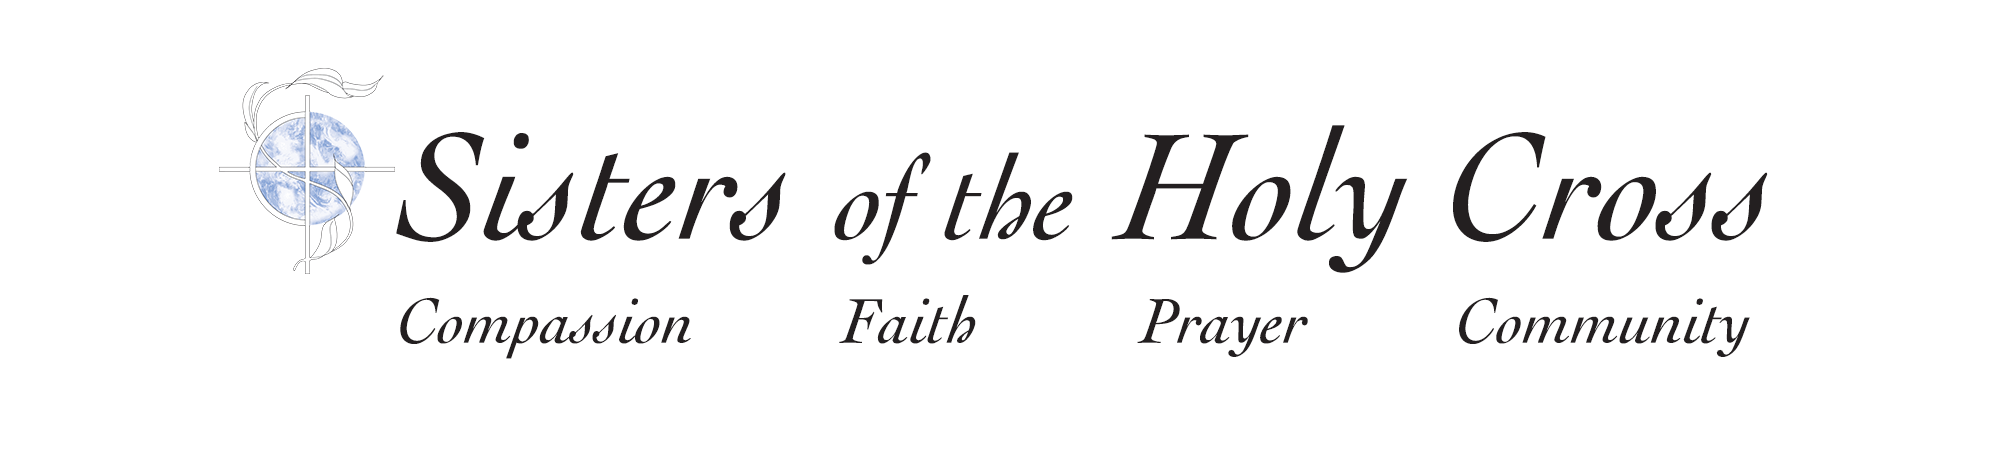 Vocation Directors | Sisters of the Holy Cross